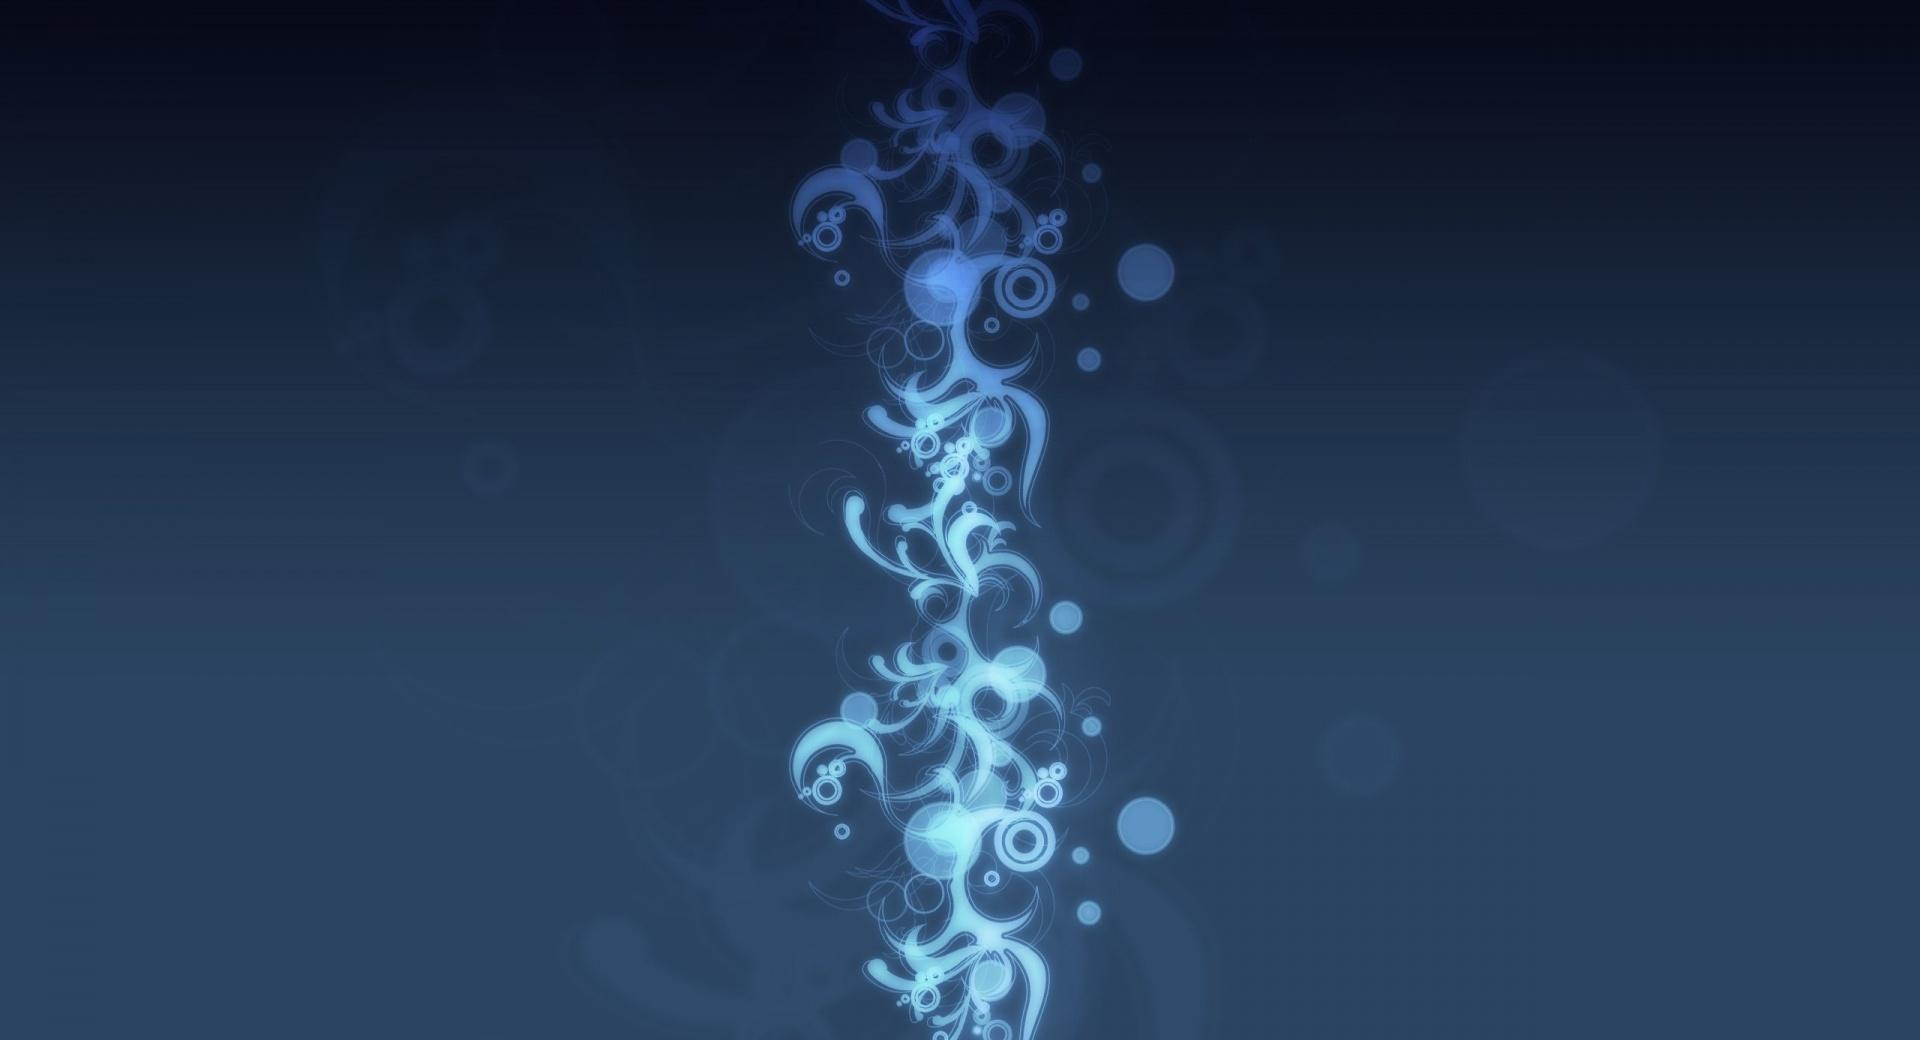 Abstract Design (Blue) wallpapers HD quality